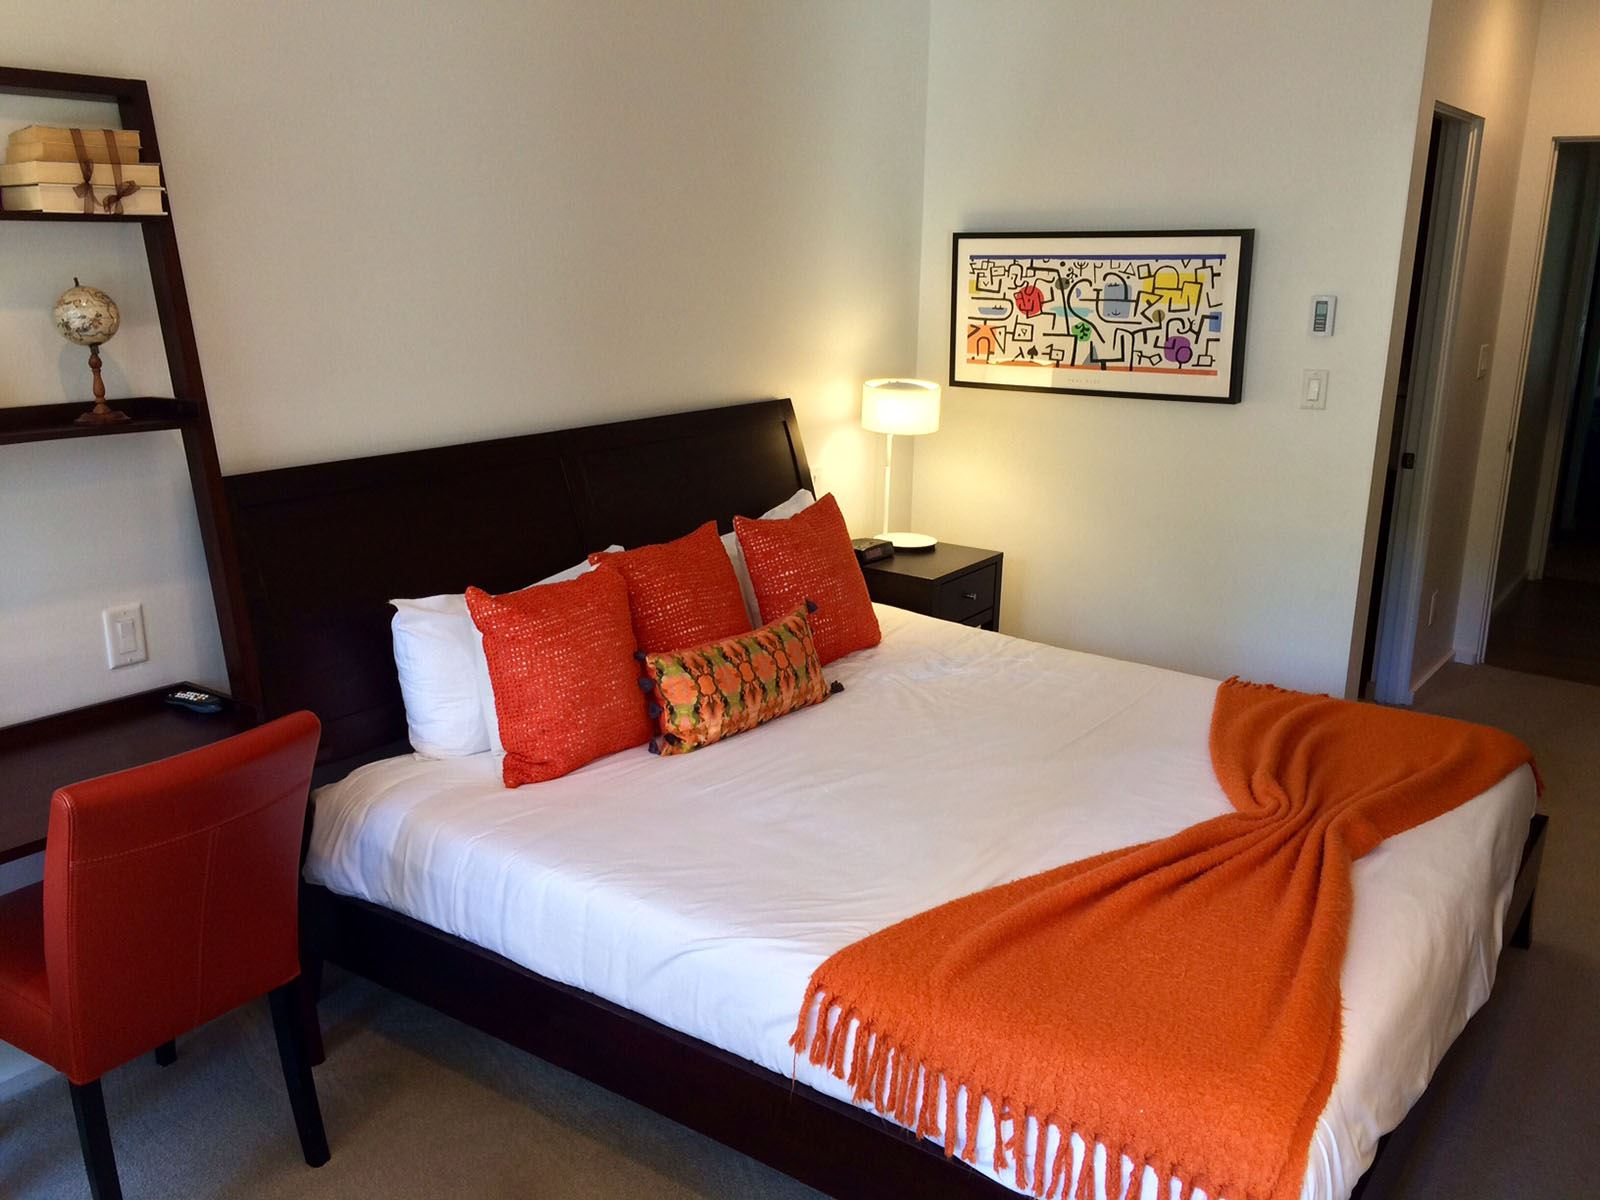 3BPlat_bedroom with king bed with decorative standing shelving next to it